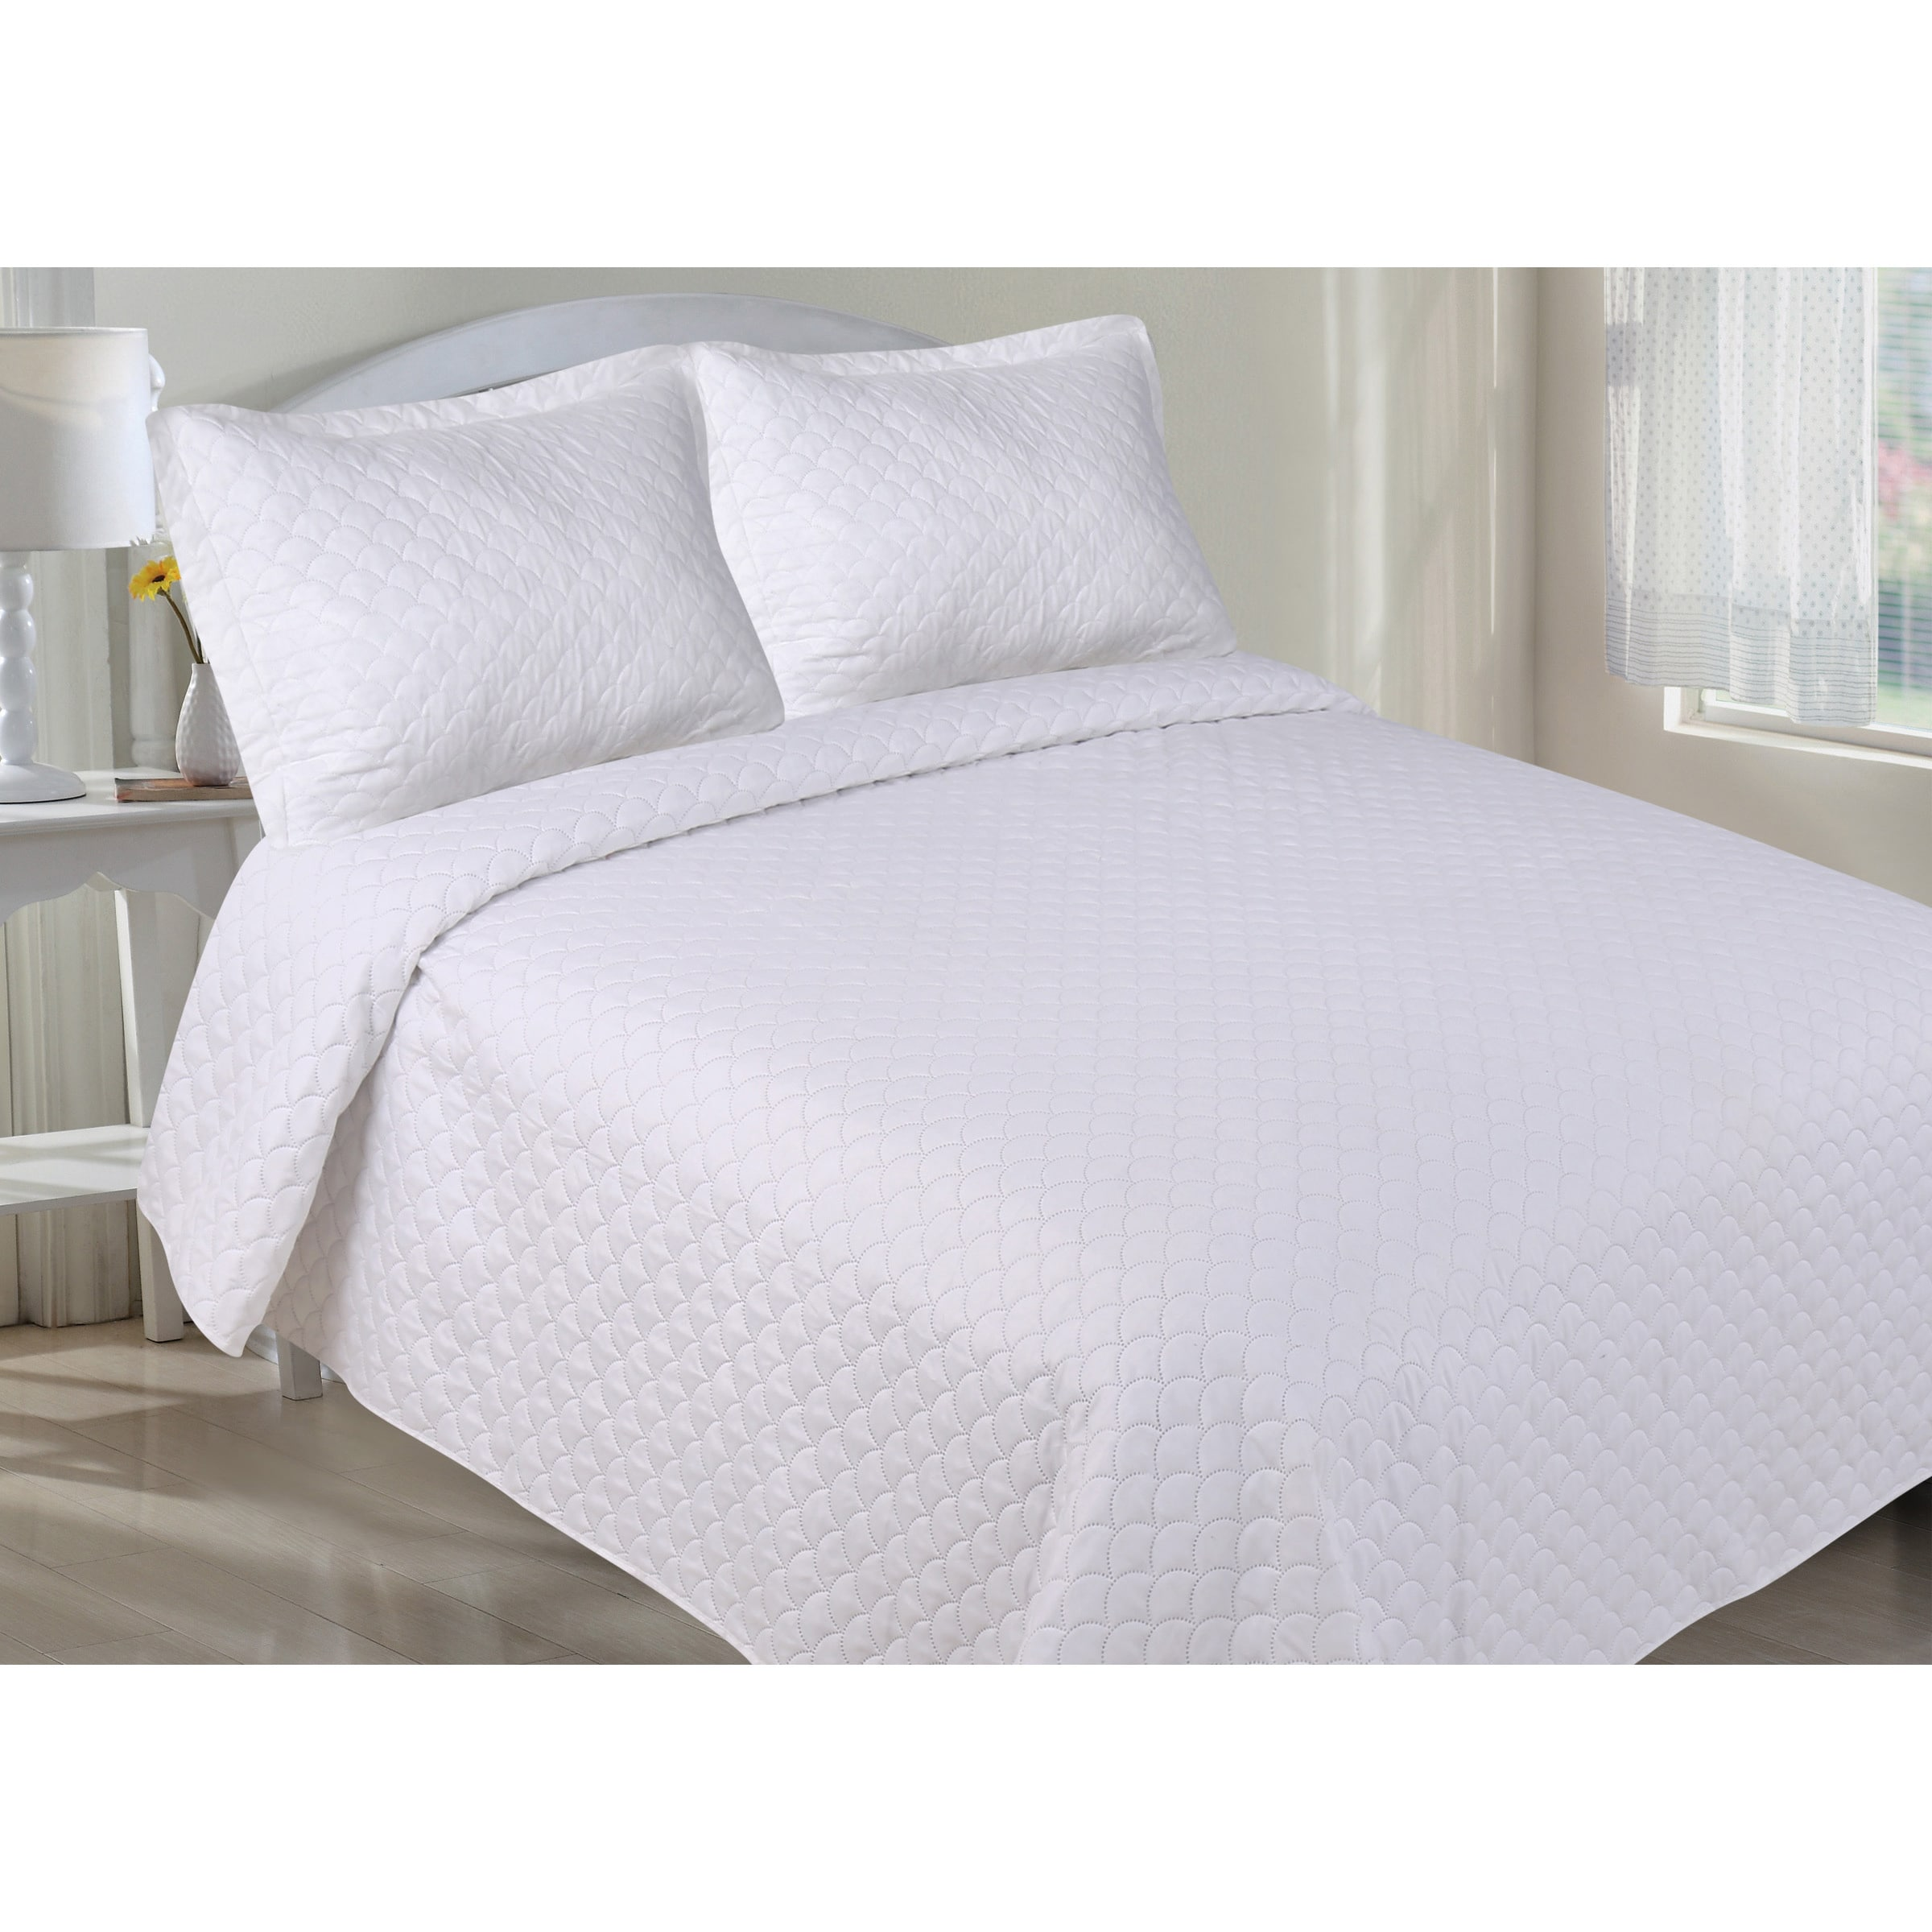 duvet joanna home magnolia by gaines products platform bed cover furniture scallop low queen with profile trimming or